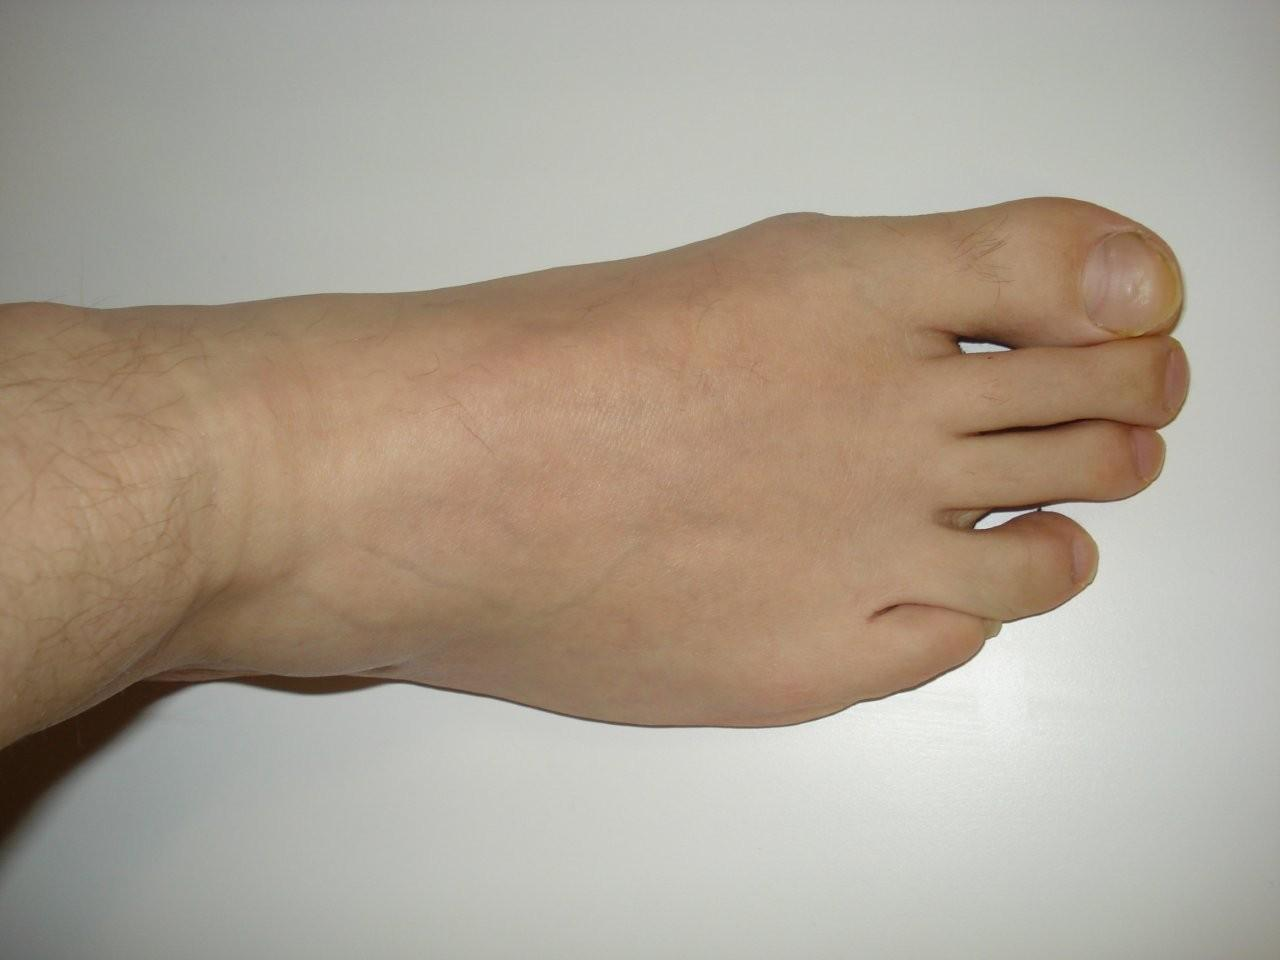 File:Right foot.jpg  Wikipedia, the free encyclopedia